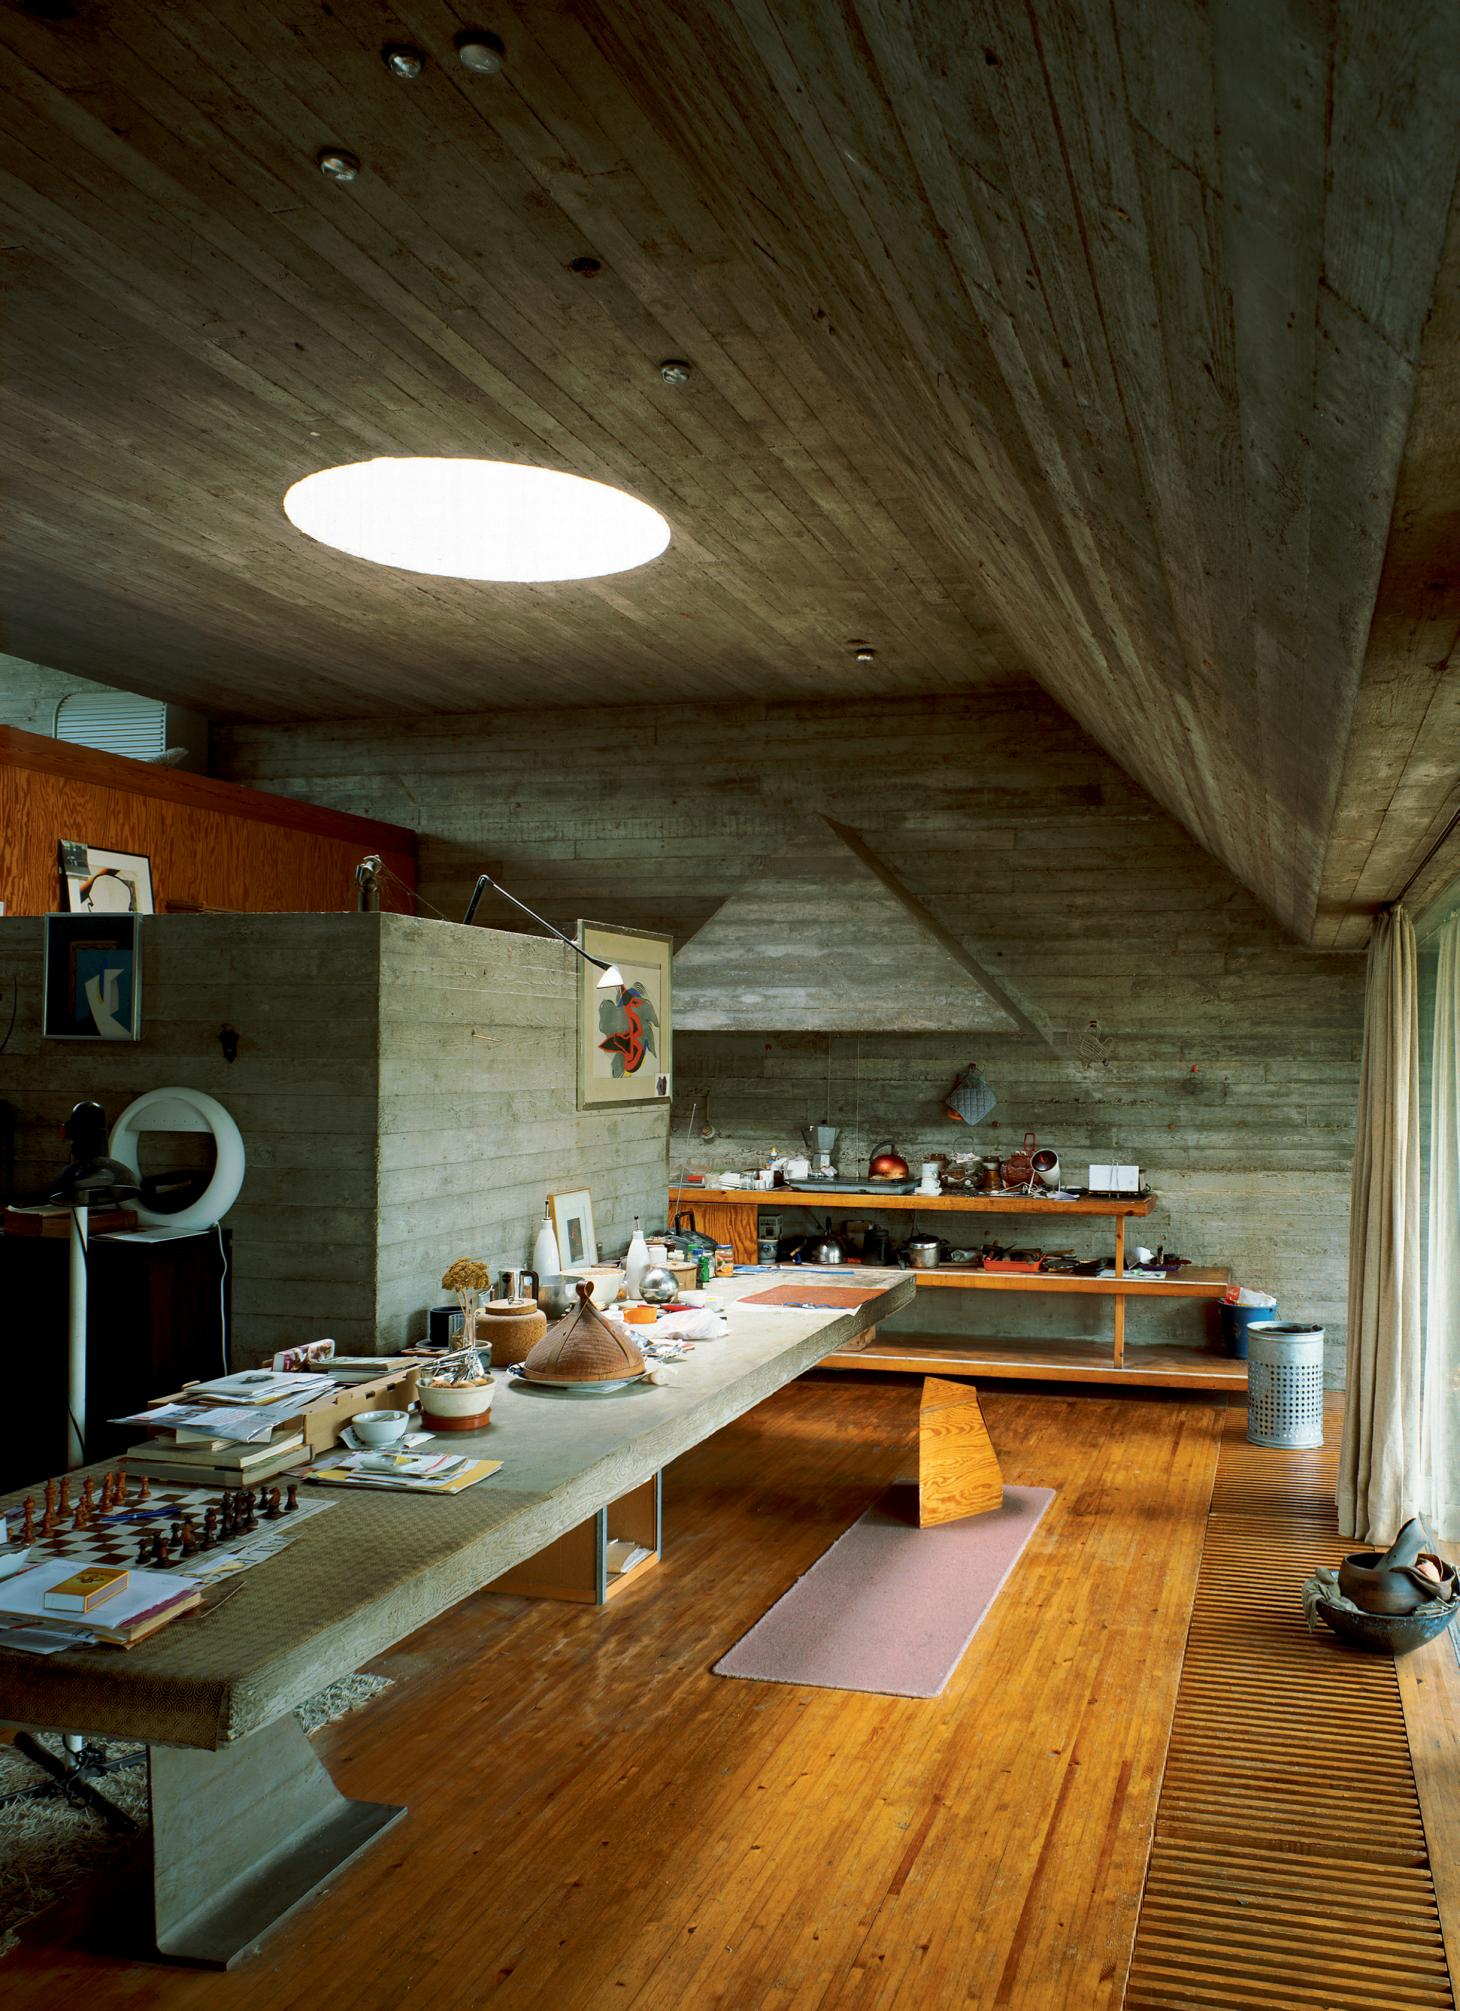 Kitchen and dining area of the Van Wassenhove house